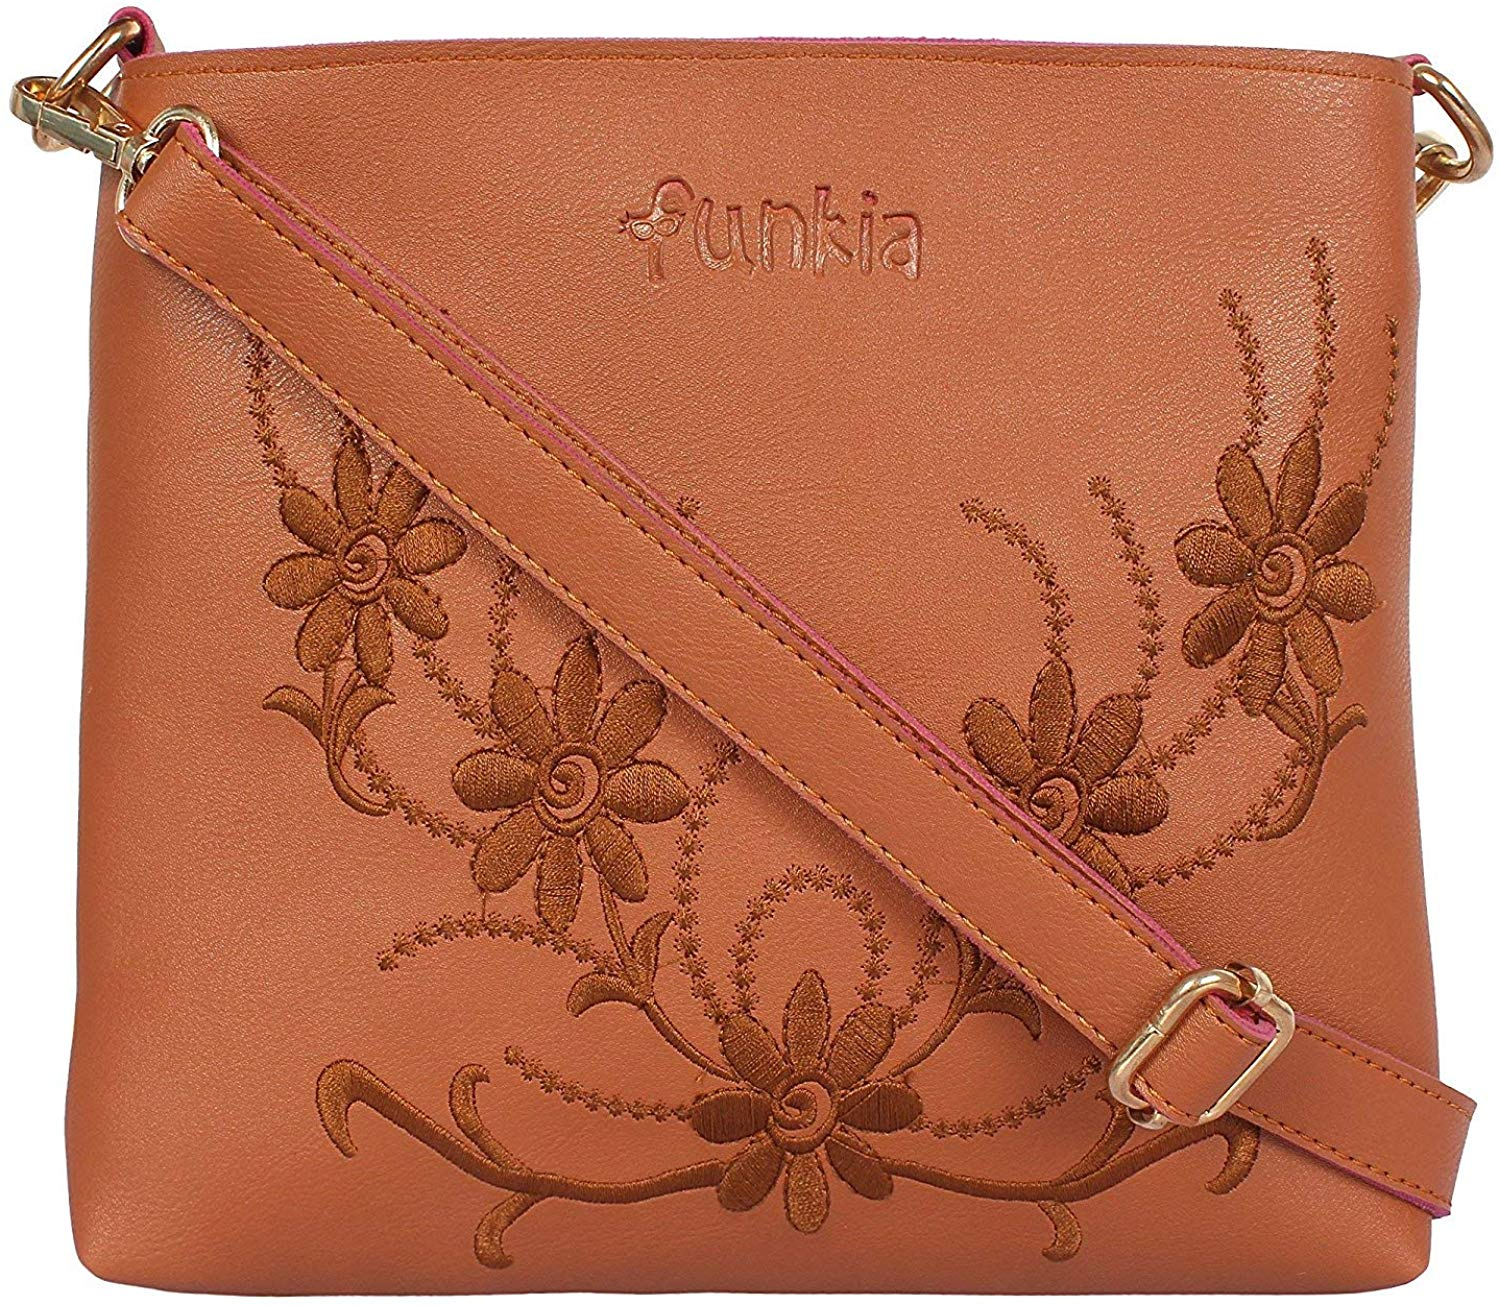 Funkia sling bags for Women's